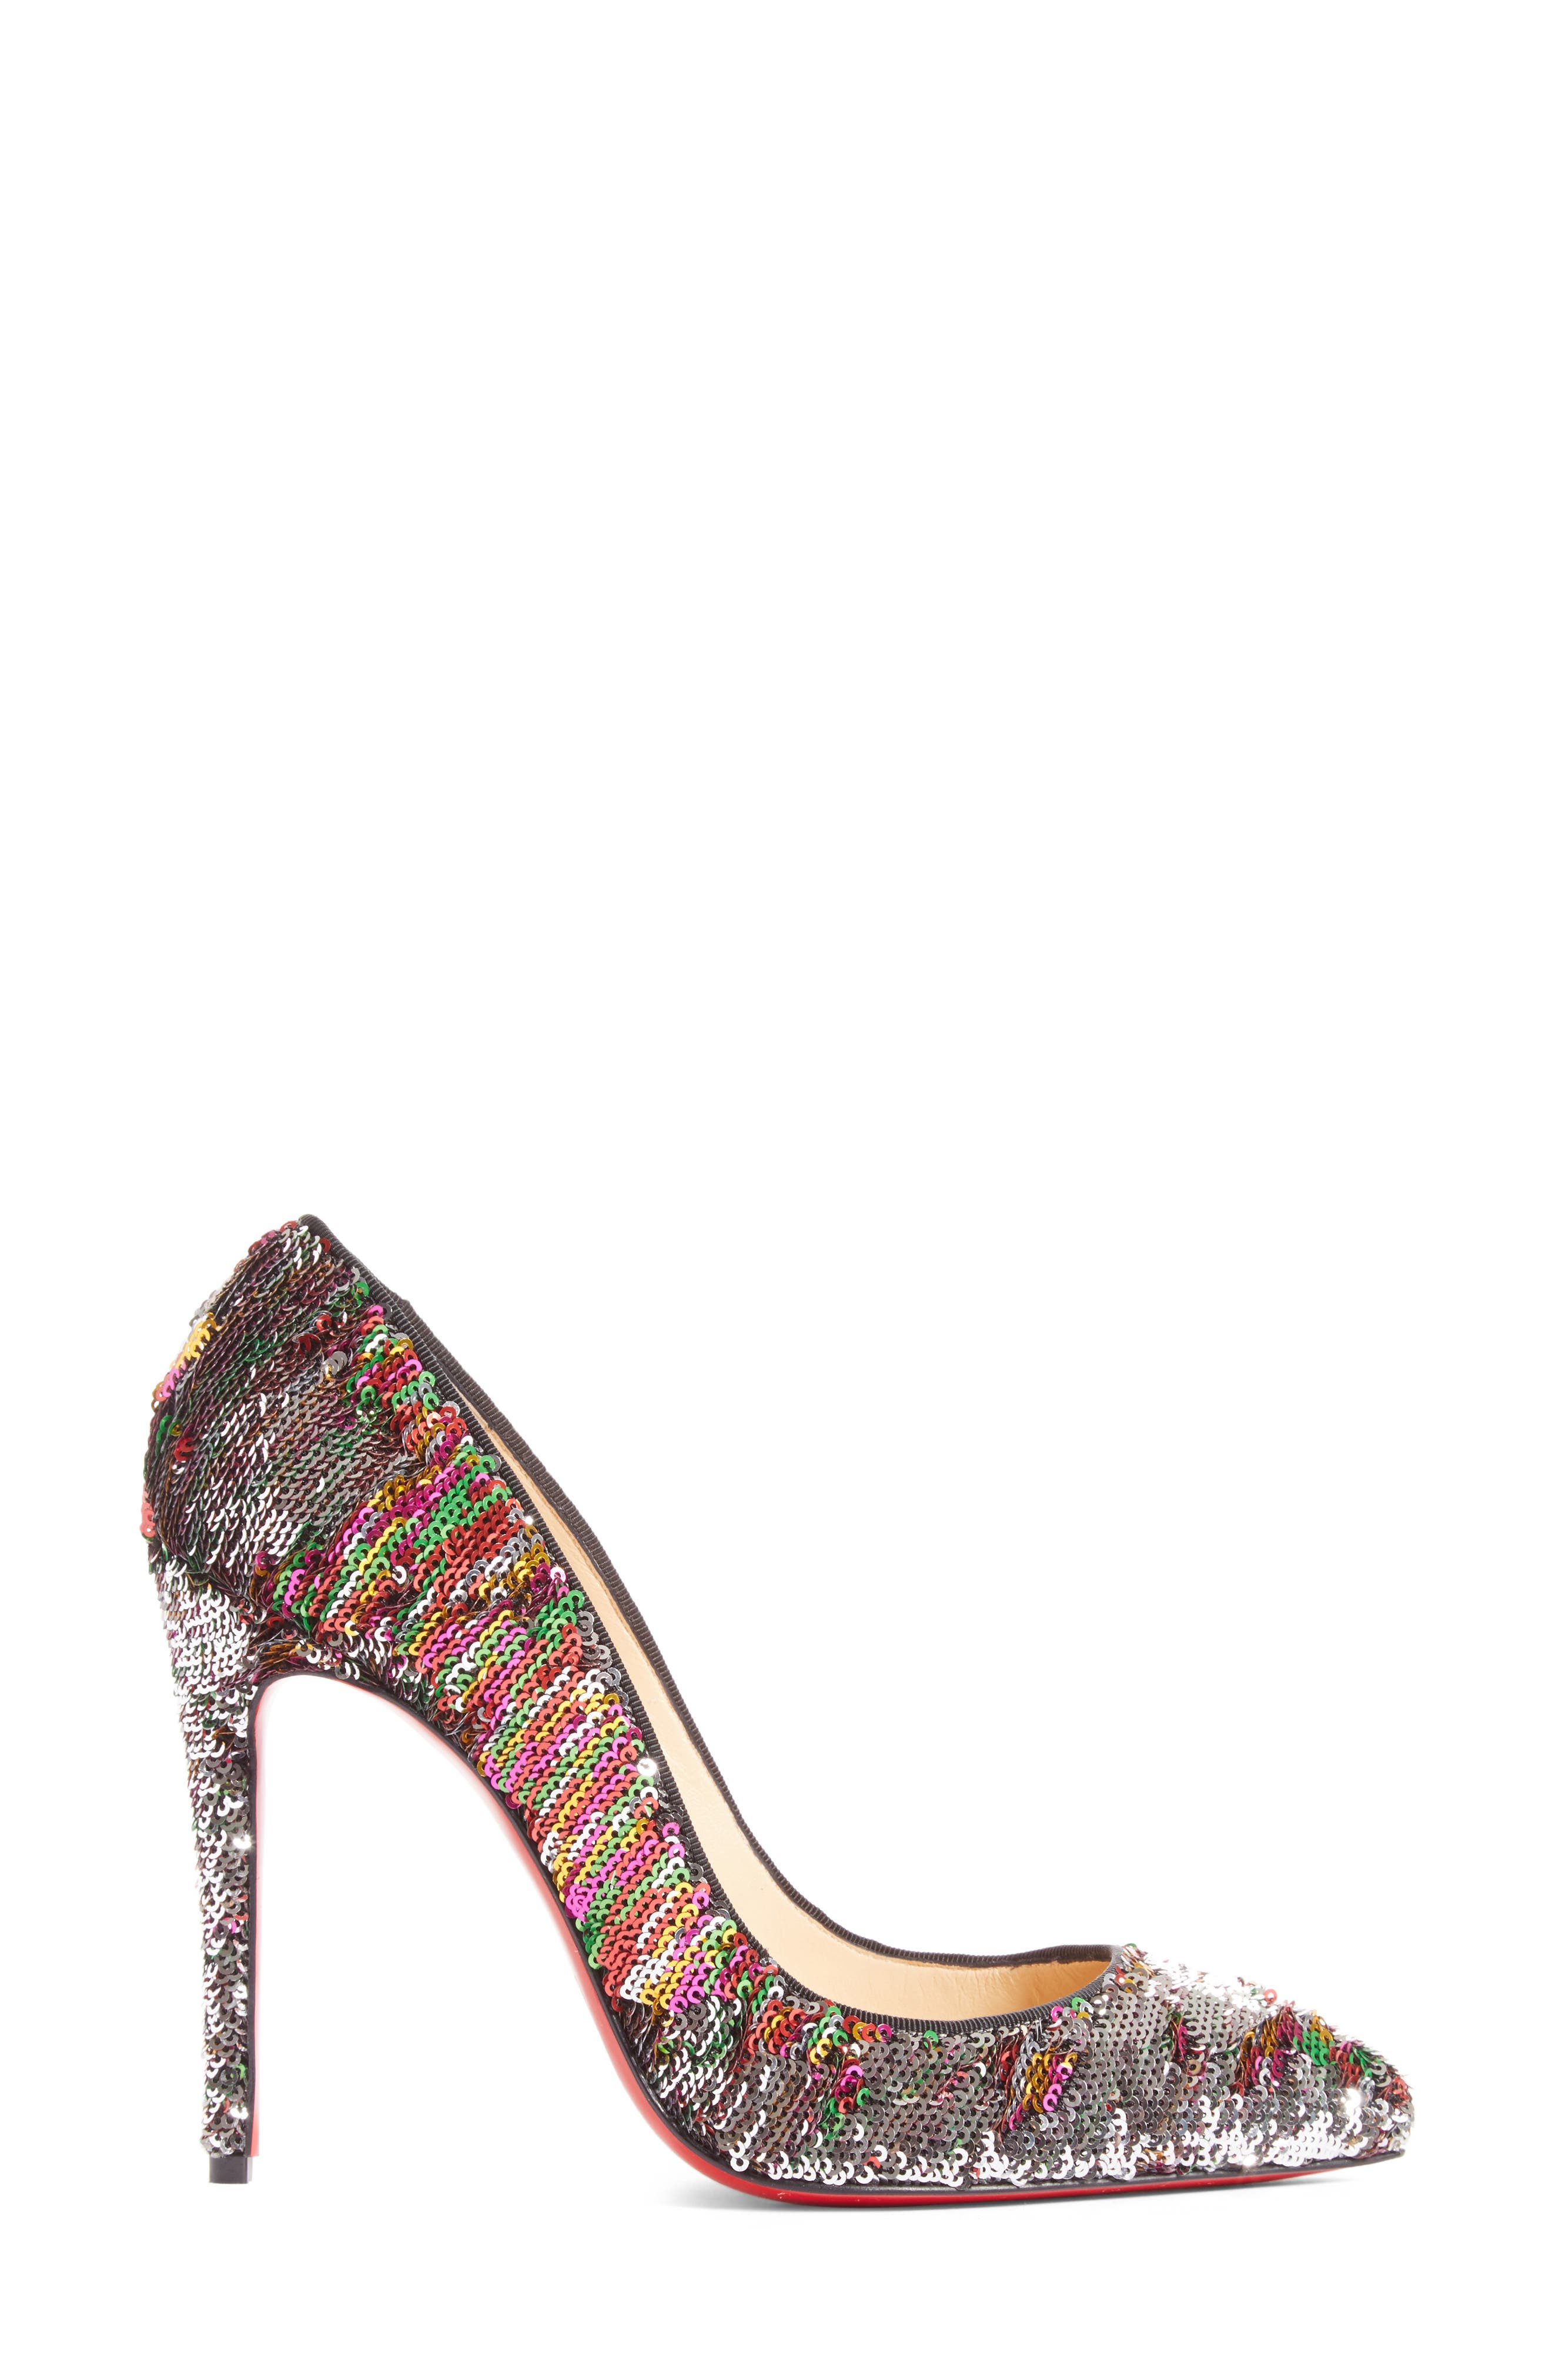 Pigalle Follies Sequin Pointy Toe Pump,                             Alternate thumbnail 3, color,                             040